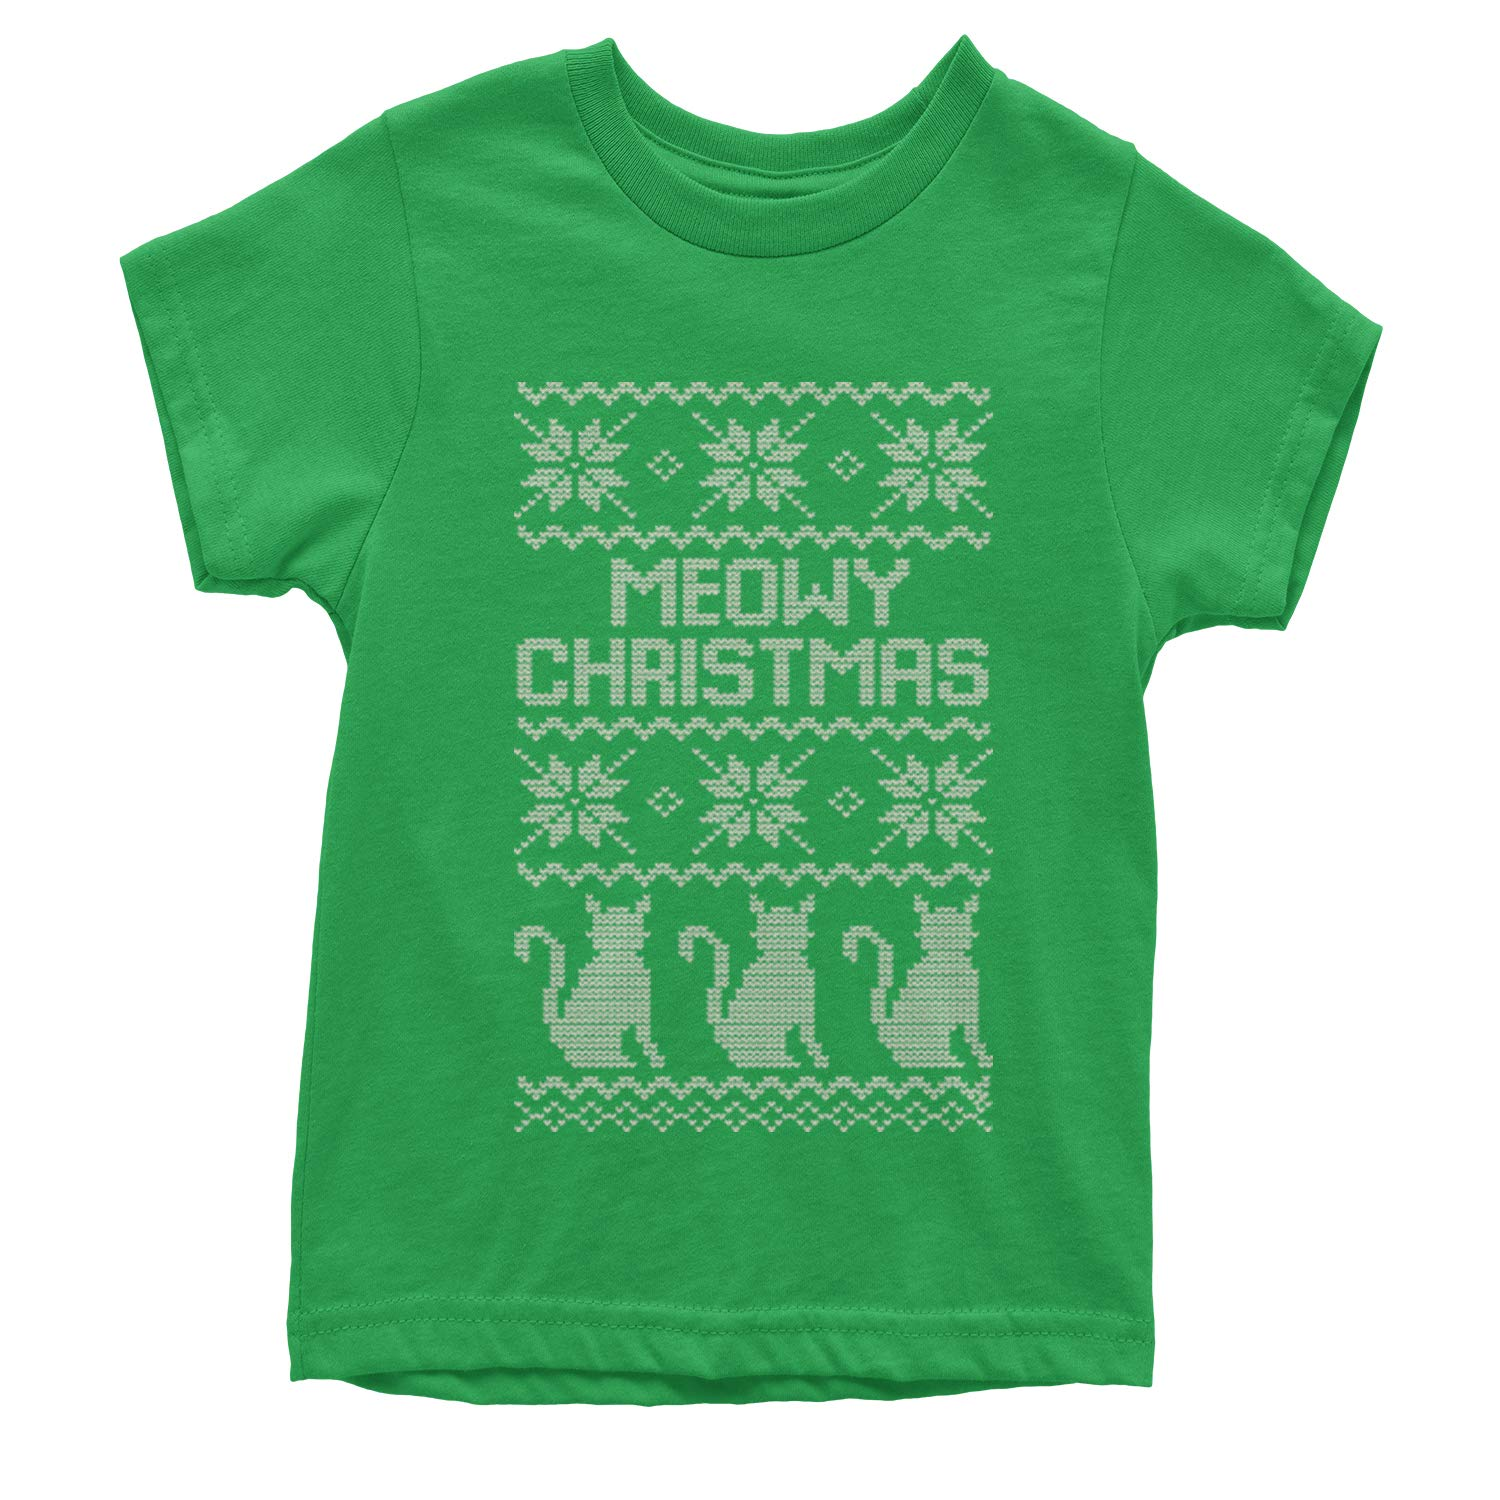 Motivated Culture Meowy Christmas Ugly Christmas Sweater Youth T-Shirt